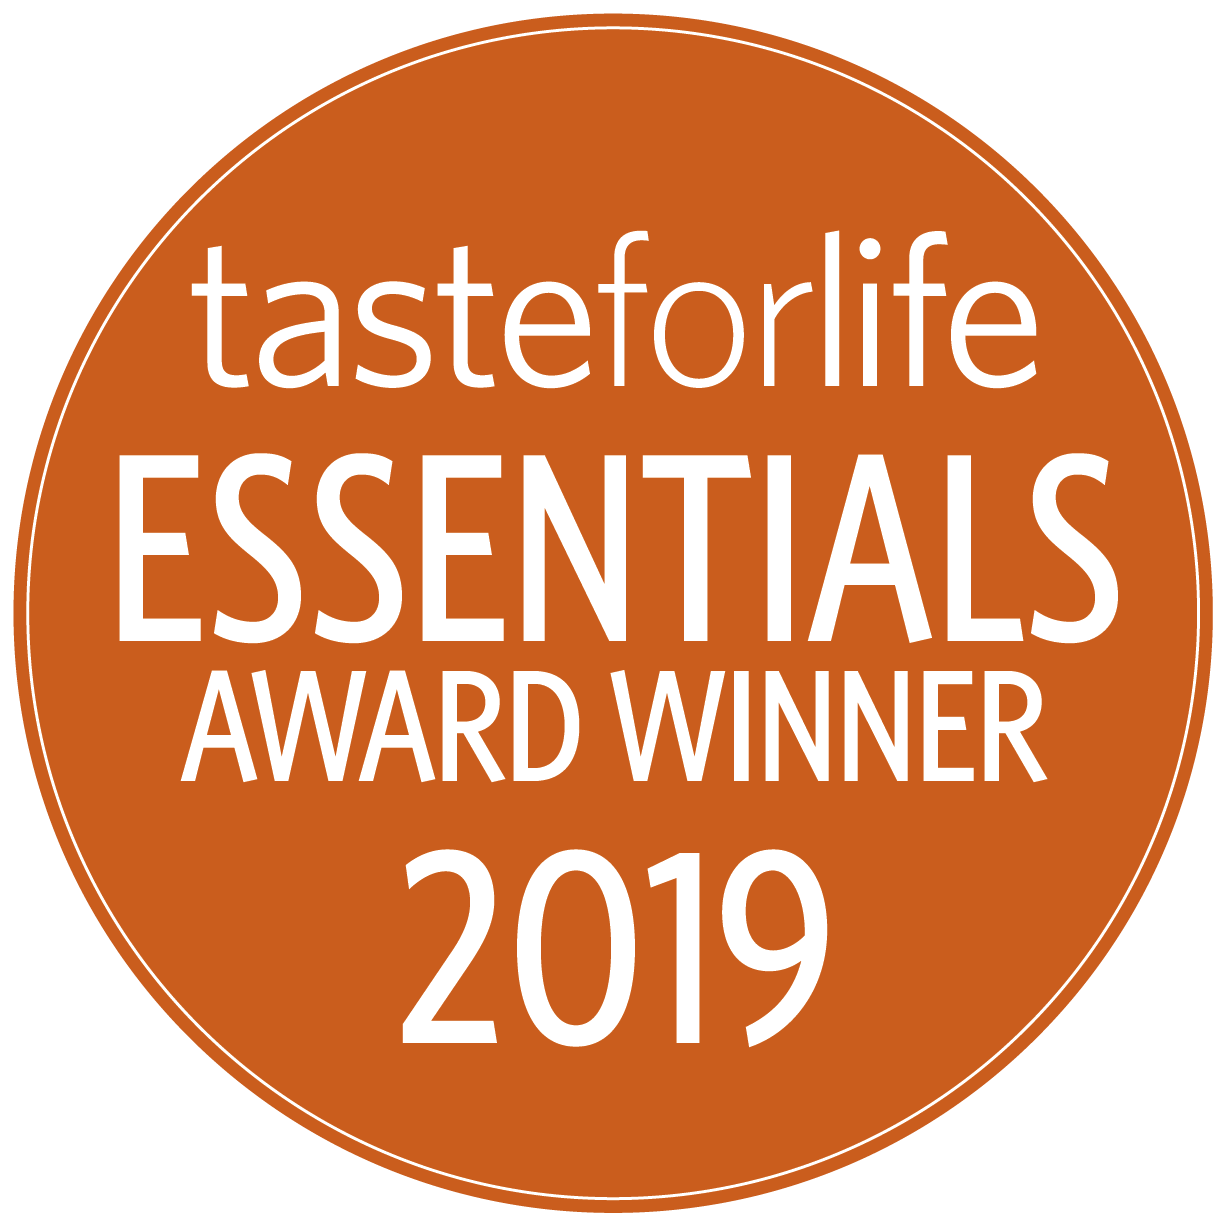 2019 Taste for Life Essentials Award Winner